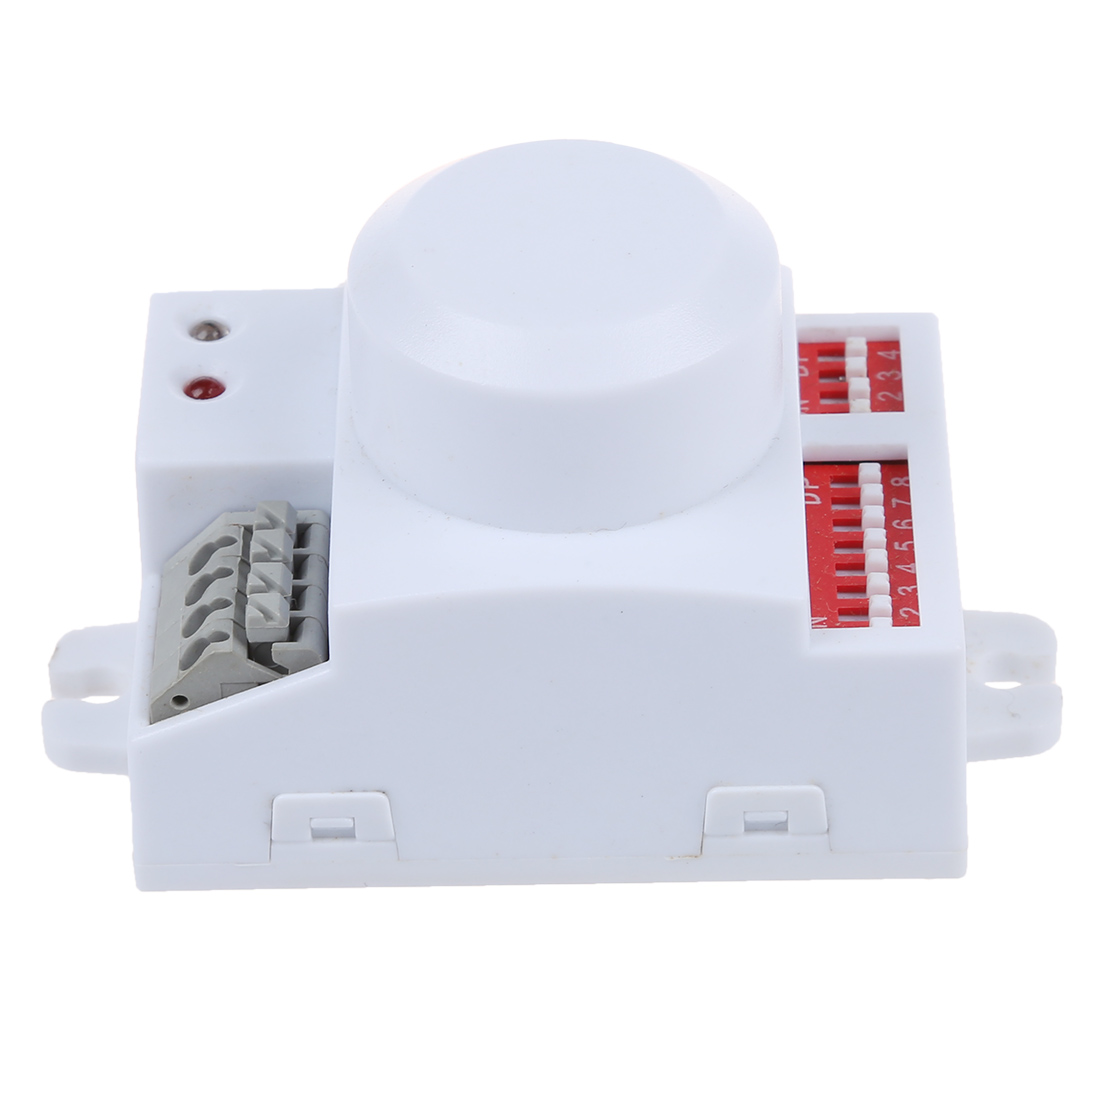 CSS Microwave motion sensor switch Doppler Radar Wireless Module for lighting 220V - White как купить ракуты в css